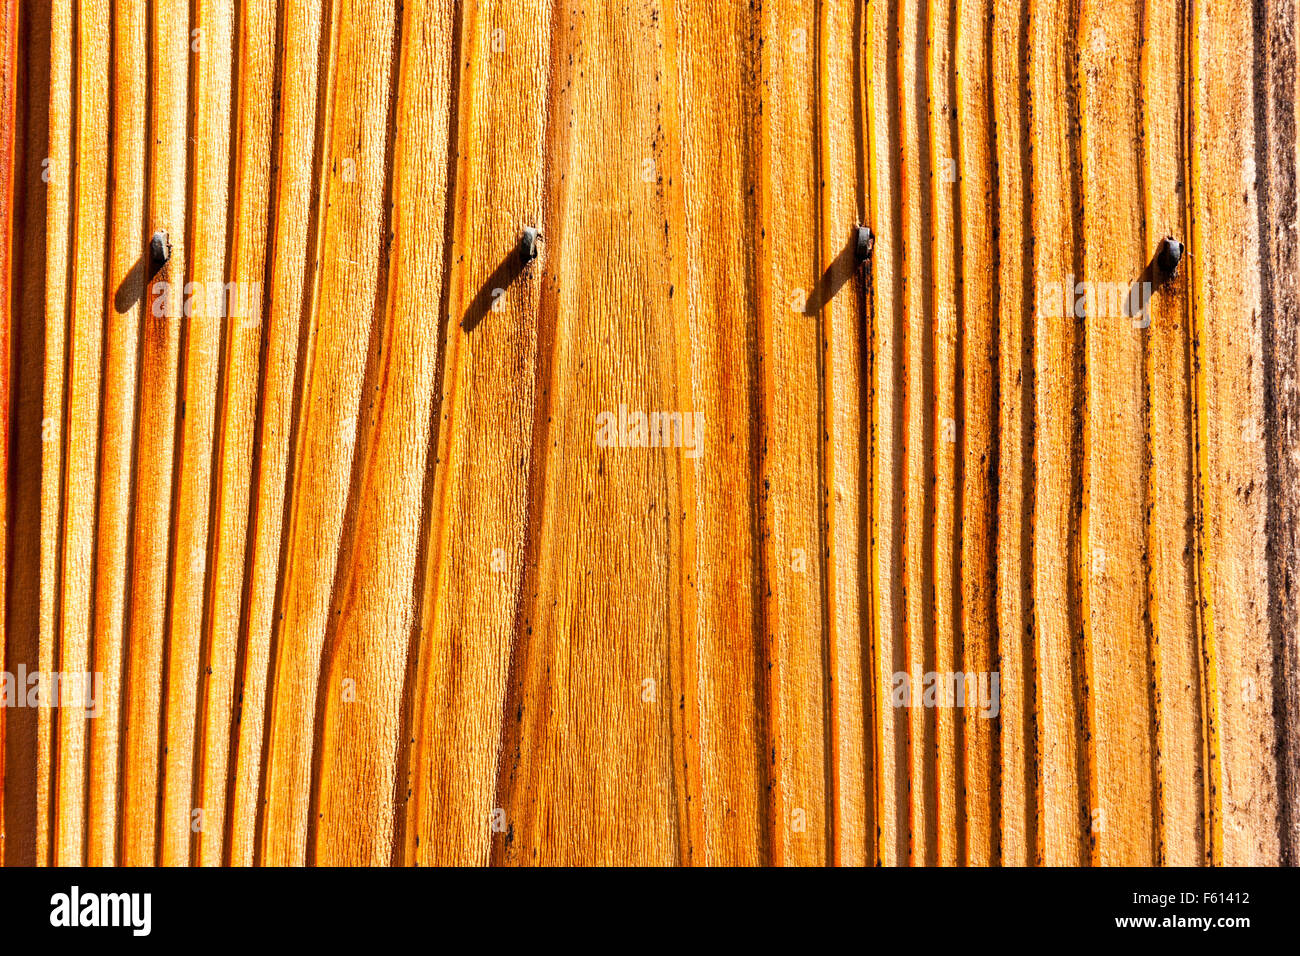 Japan, Kyoto, Gion. Texture. Detail of traditional wooden fence with nails protruding above the wooden boards in - Stock Image